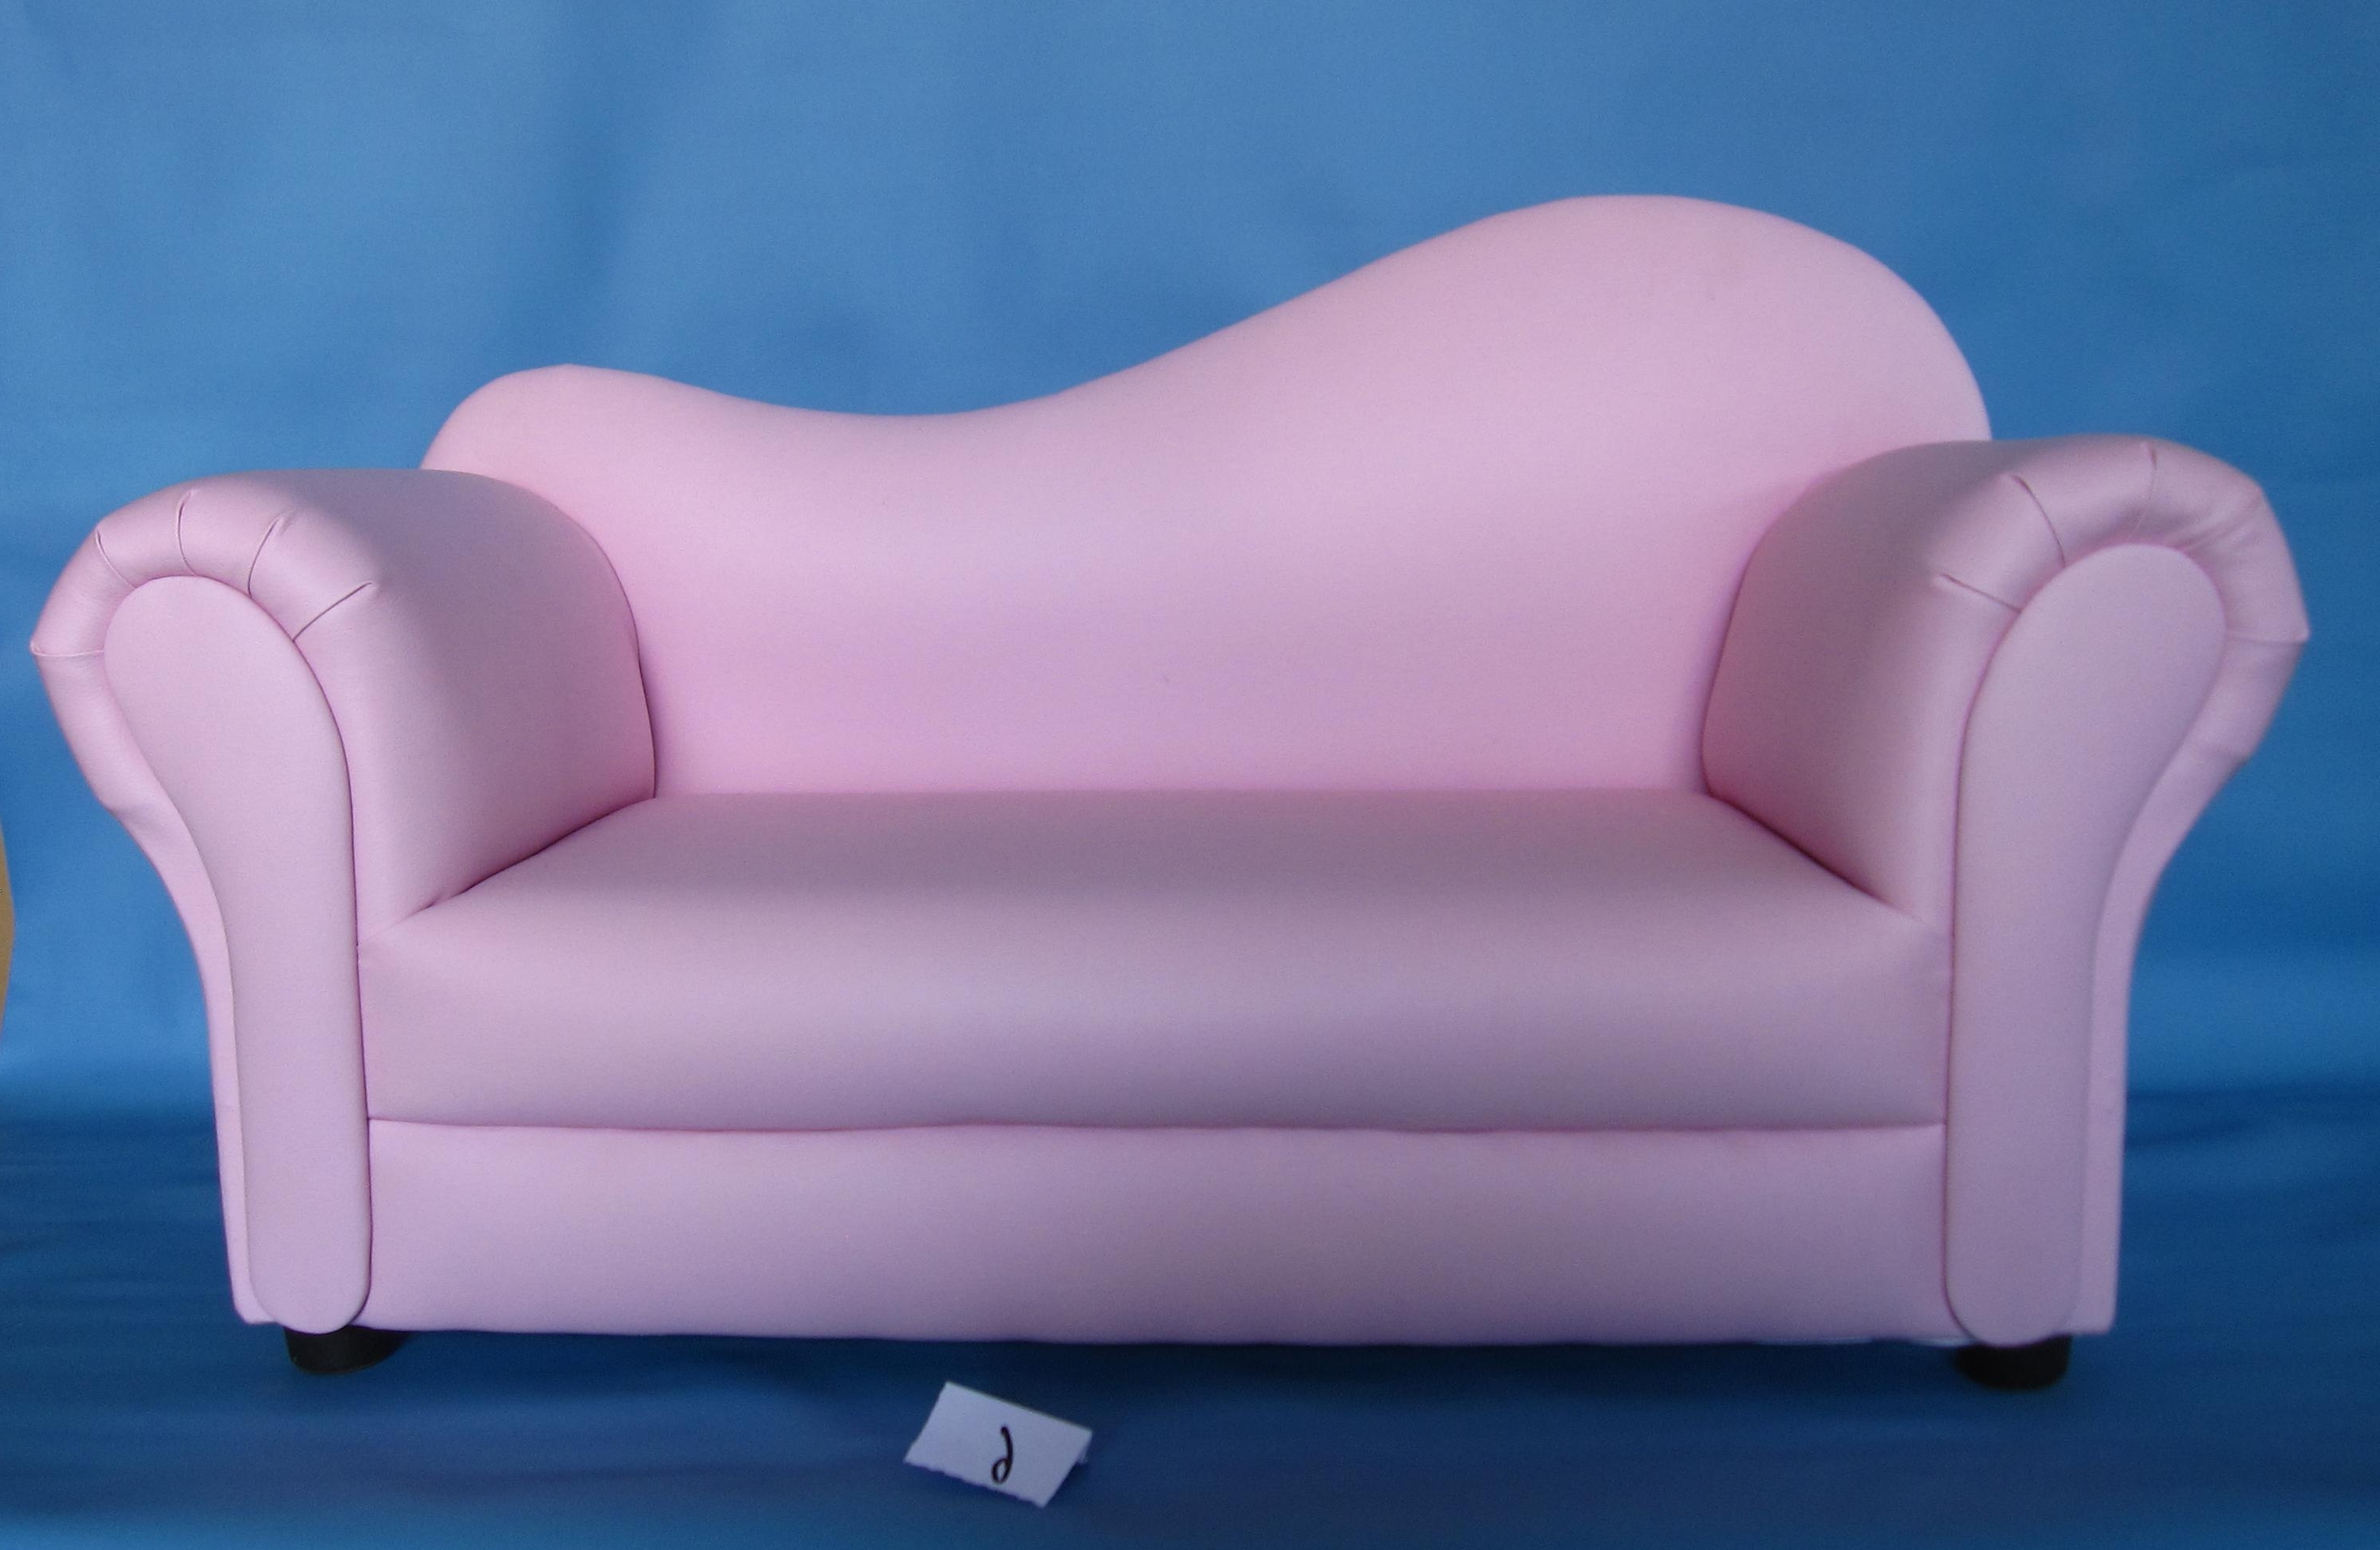 Sofa : Toddler Couch Bed Baby Sofa Bed Kids Recliner Kids Pertaining To Widely Used Cheap Kids Sofas (View 18 of 20)